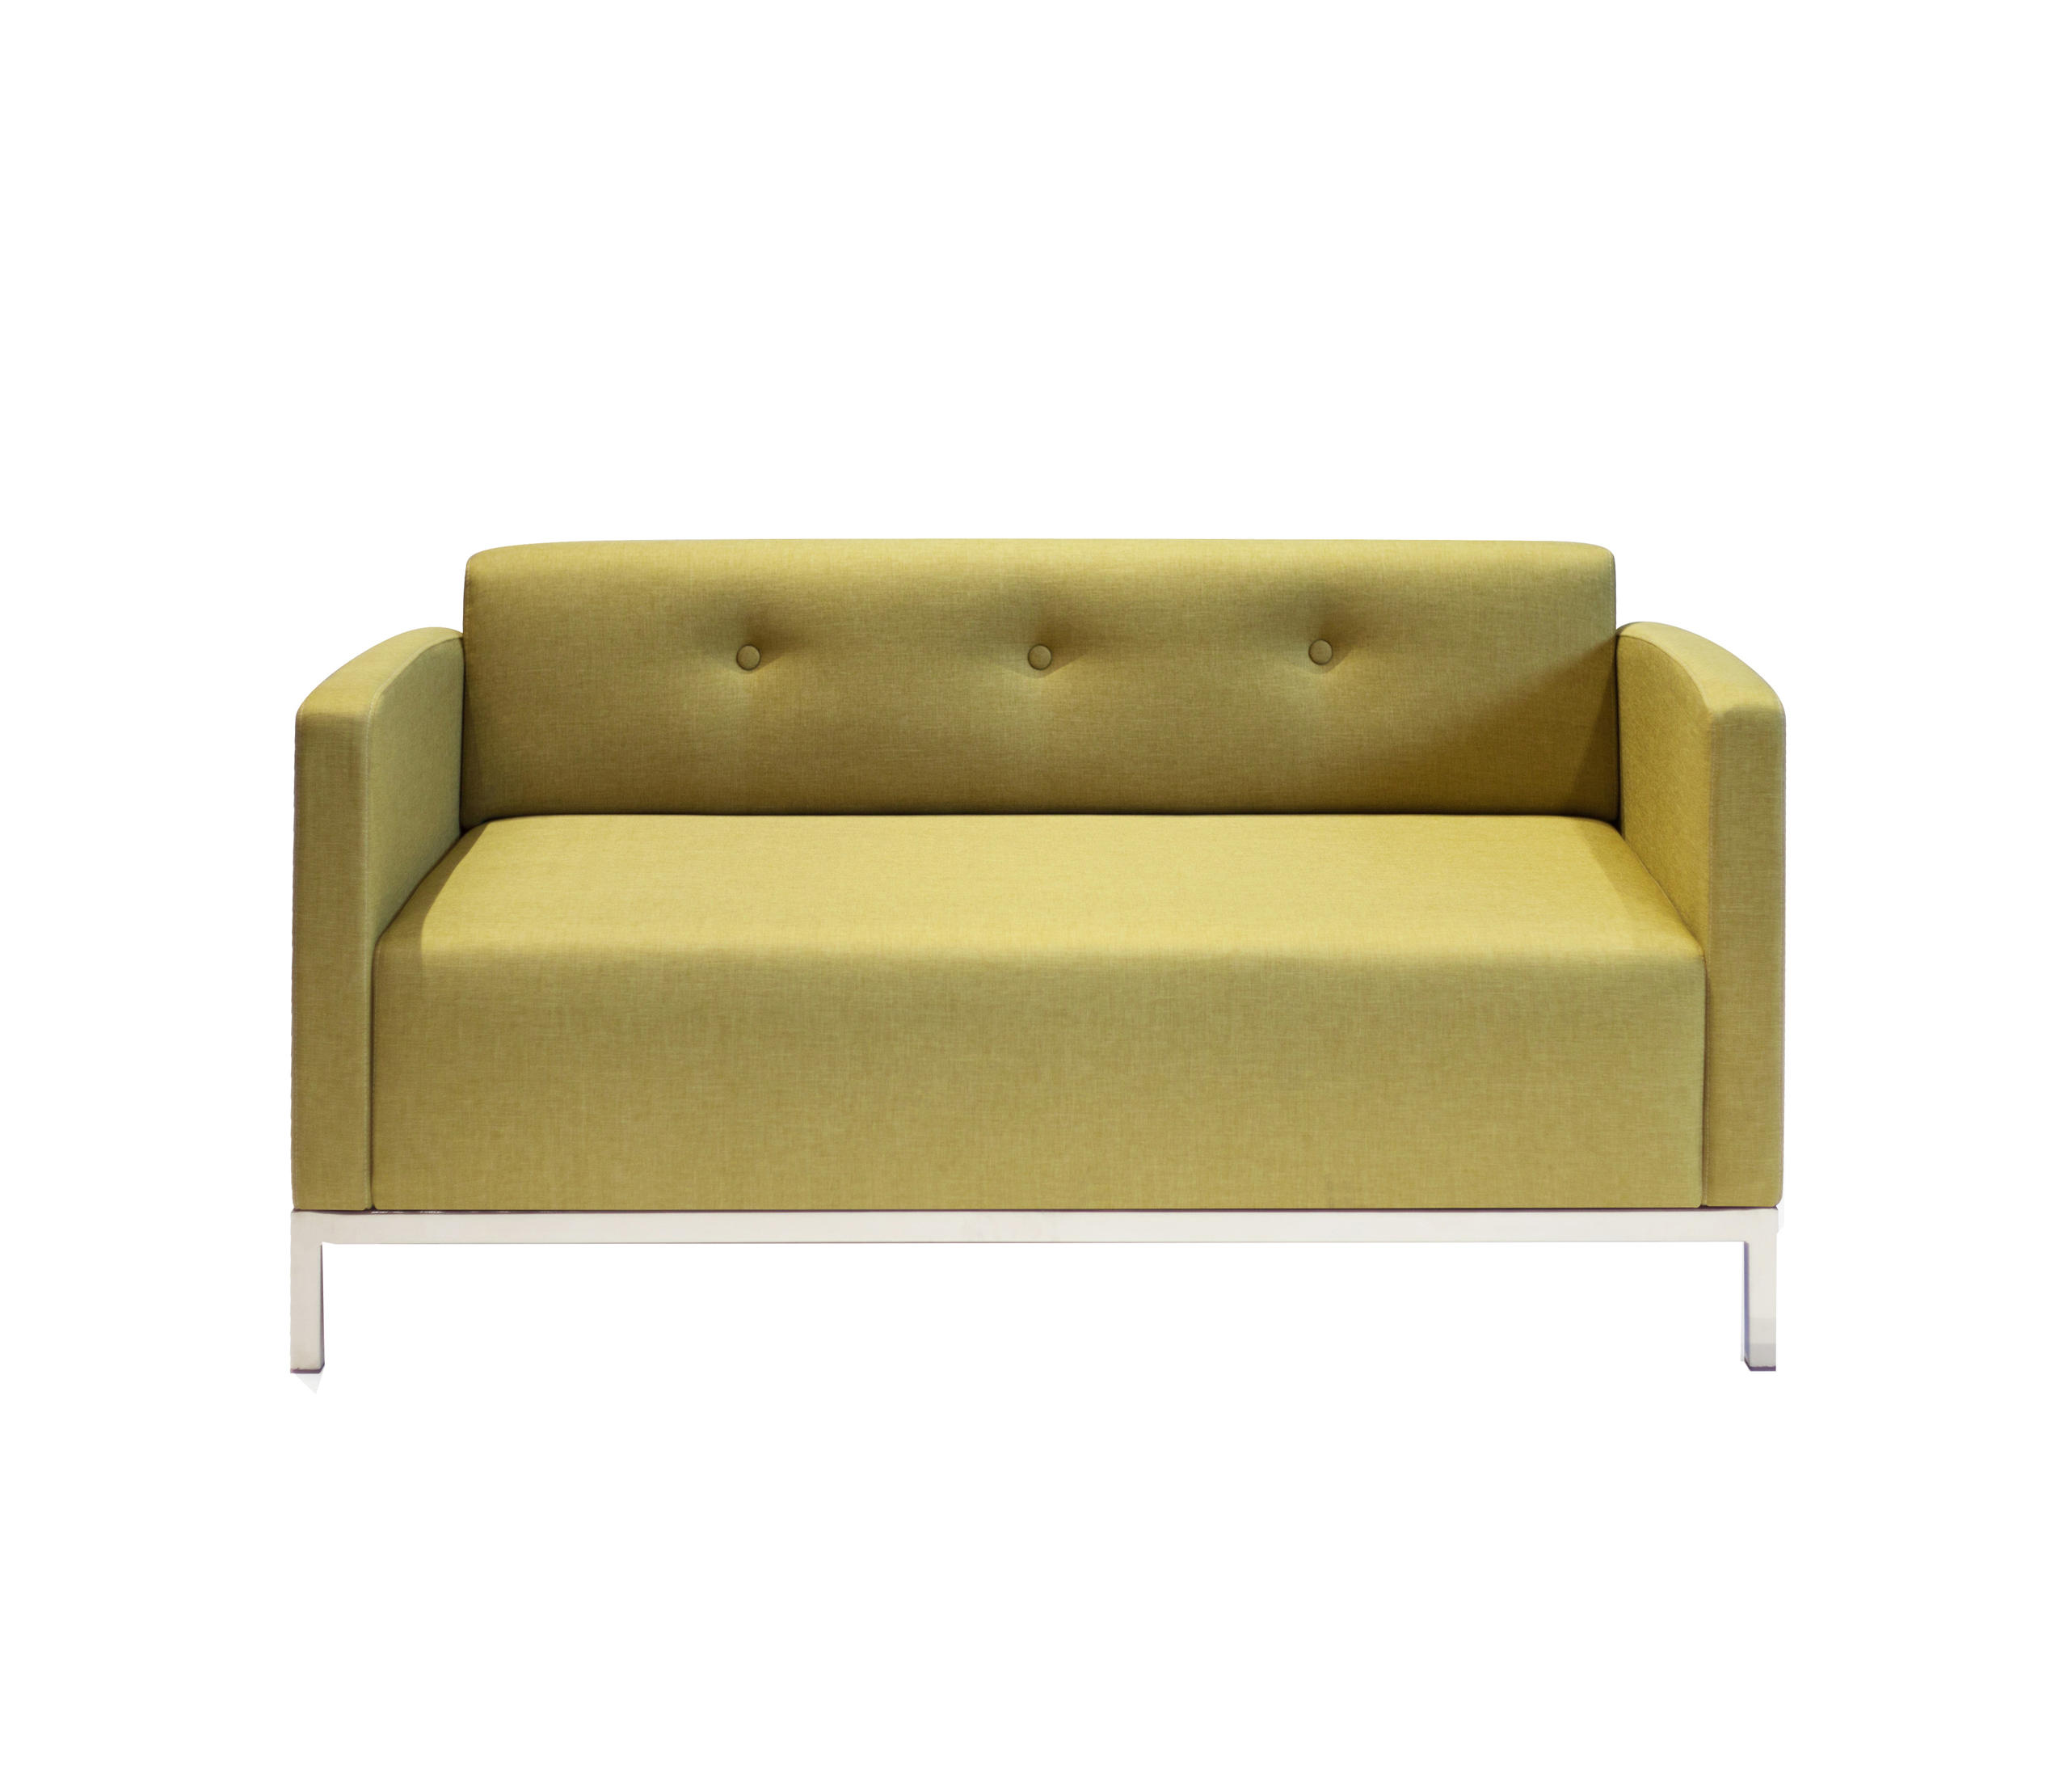 greenfront furniture sofas sofa manufacturers swansea basic lounge from 22 architonic